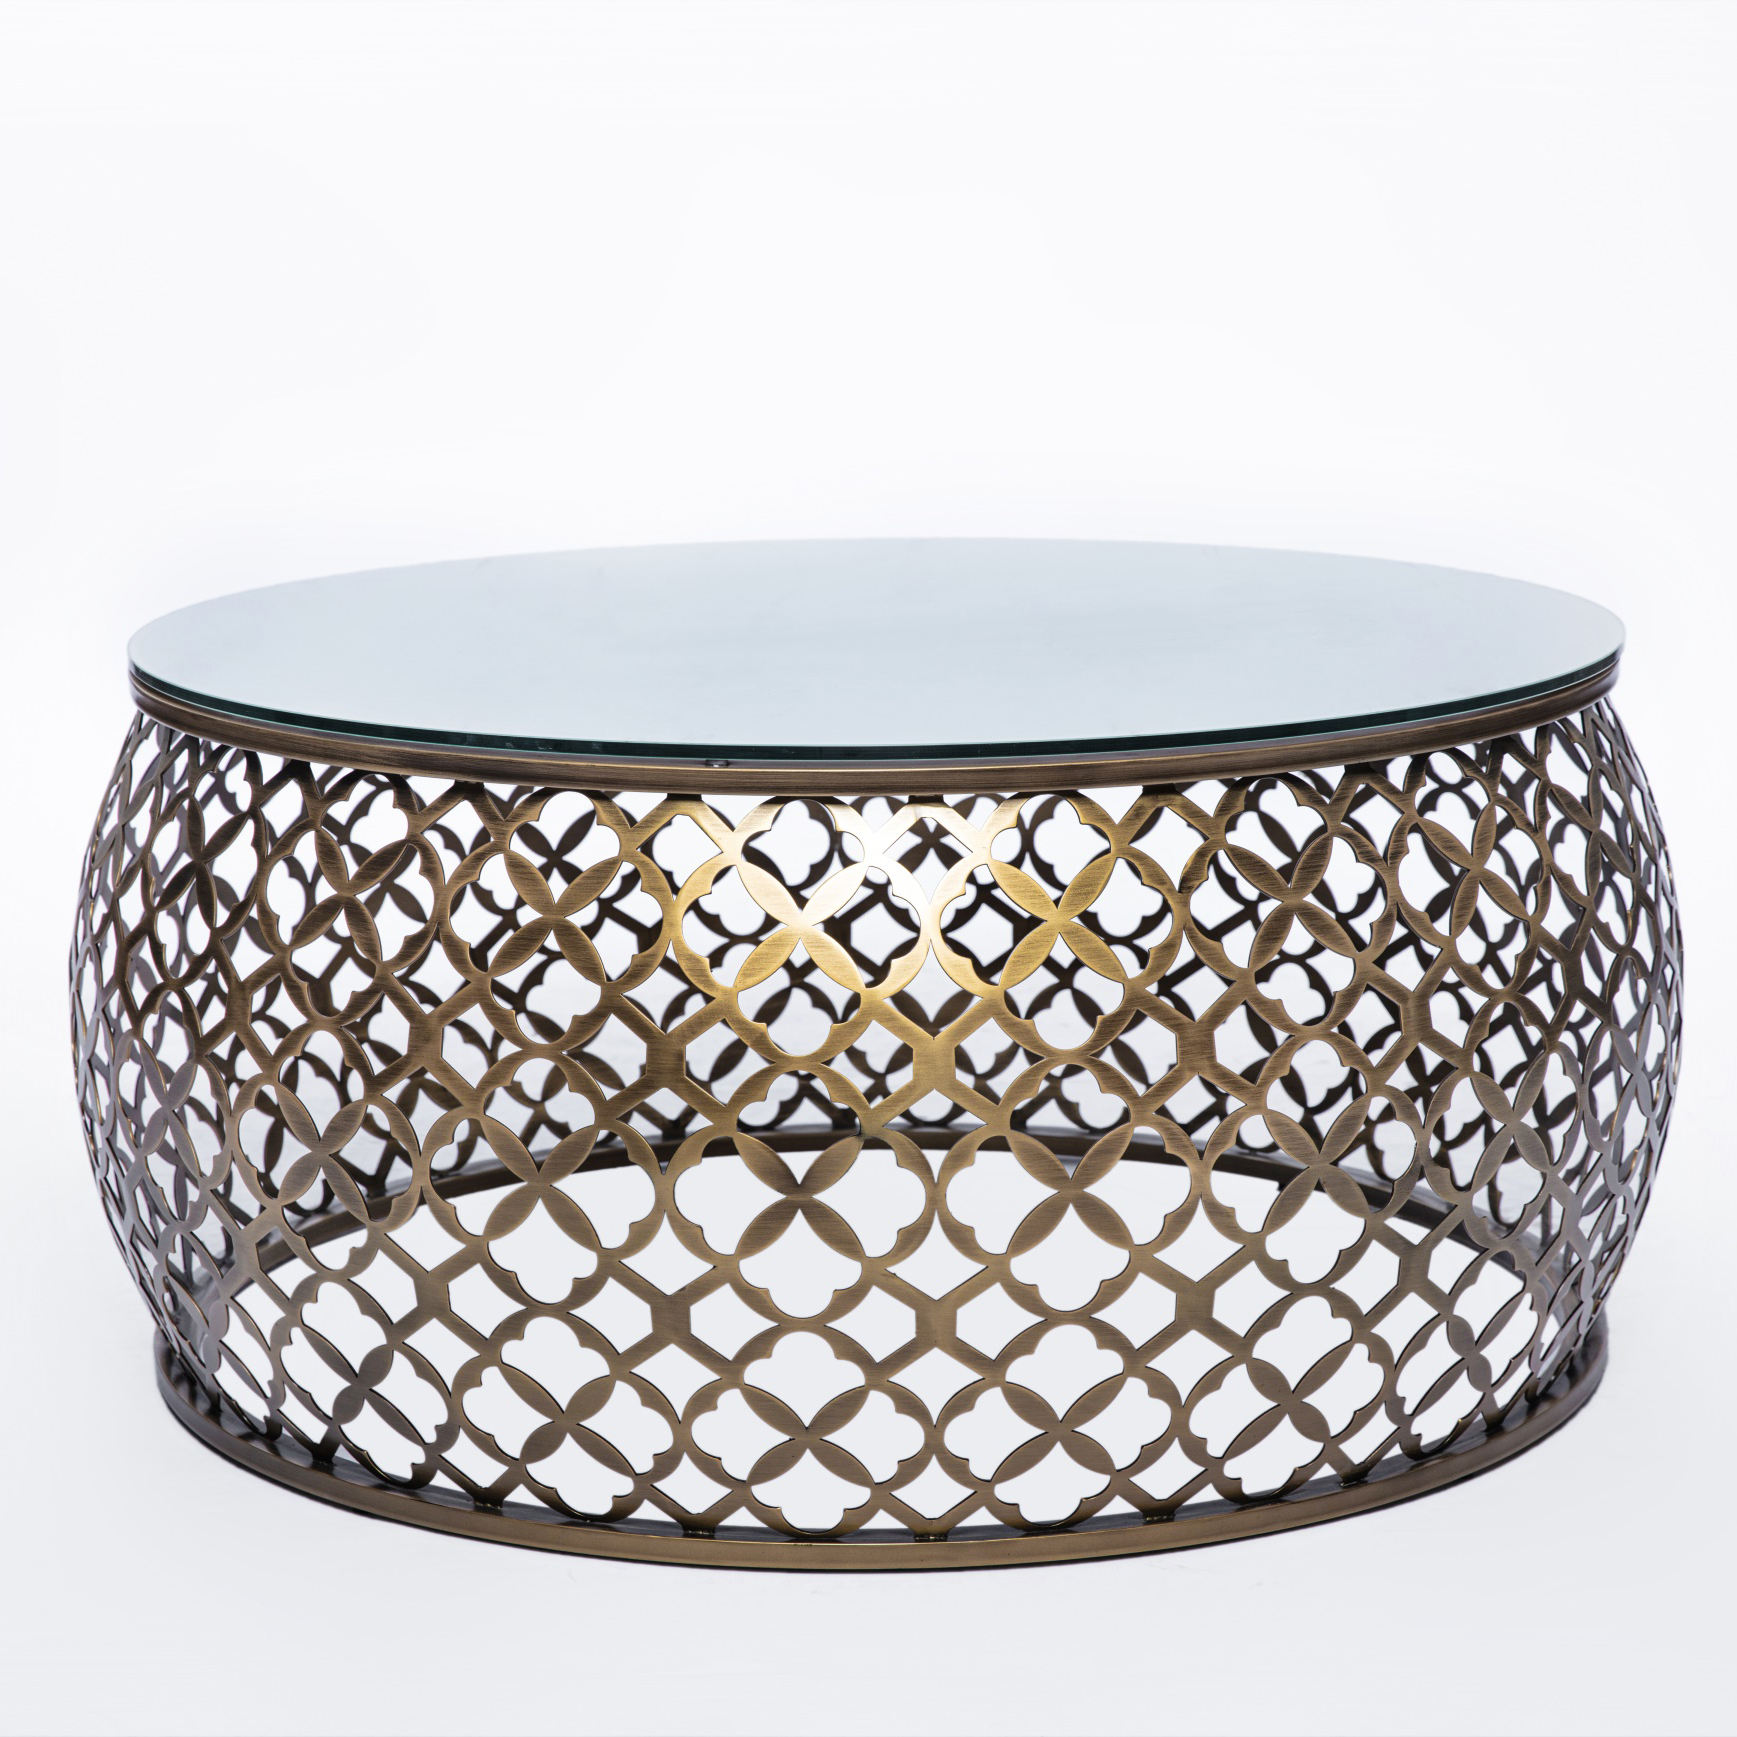 Modern Simple Living Room Furniture Luxury White Marble Top Gold Large Round Coffee Tables Set Metal Furniture